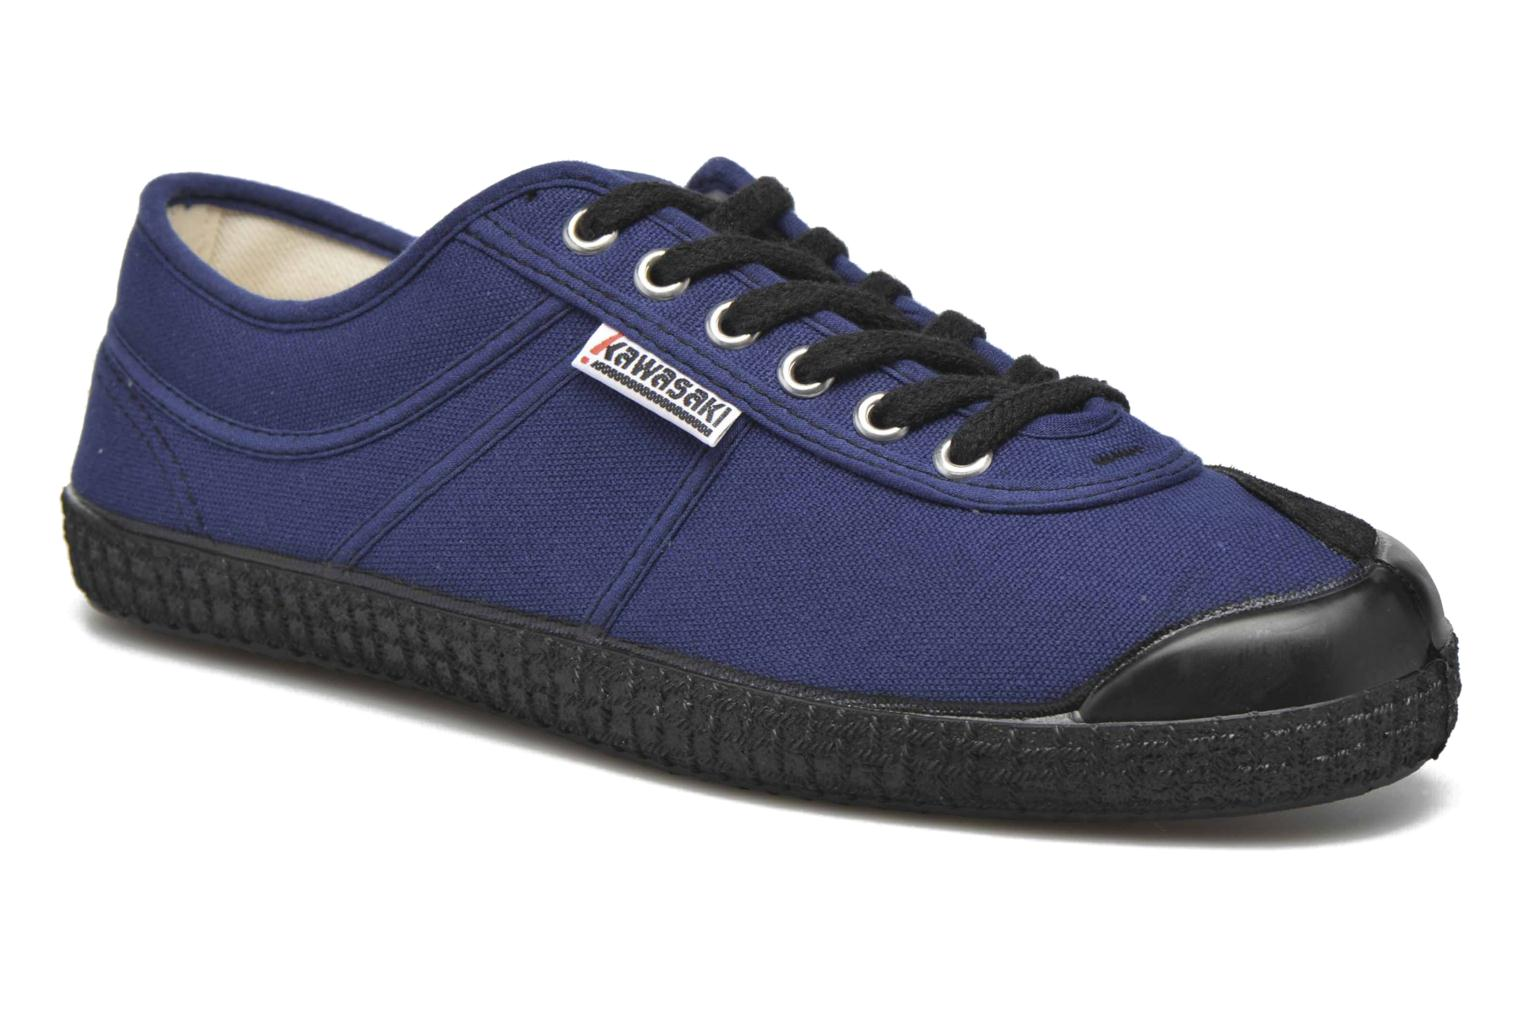 Basic Navy / black outsole